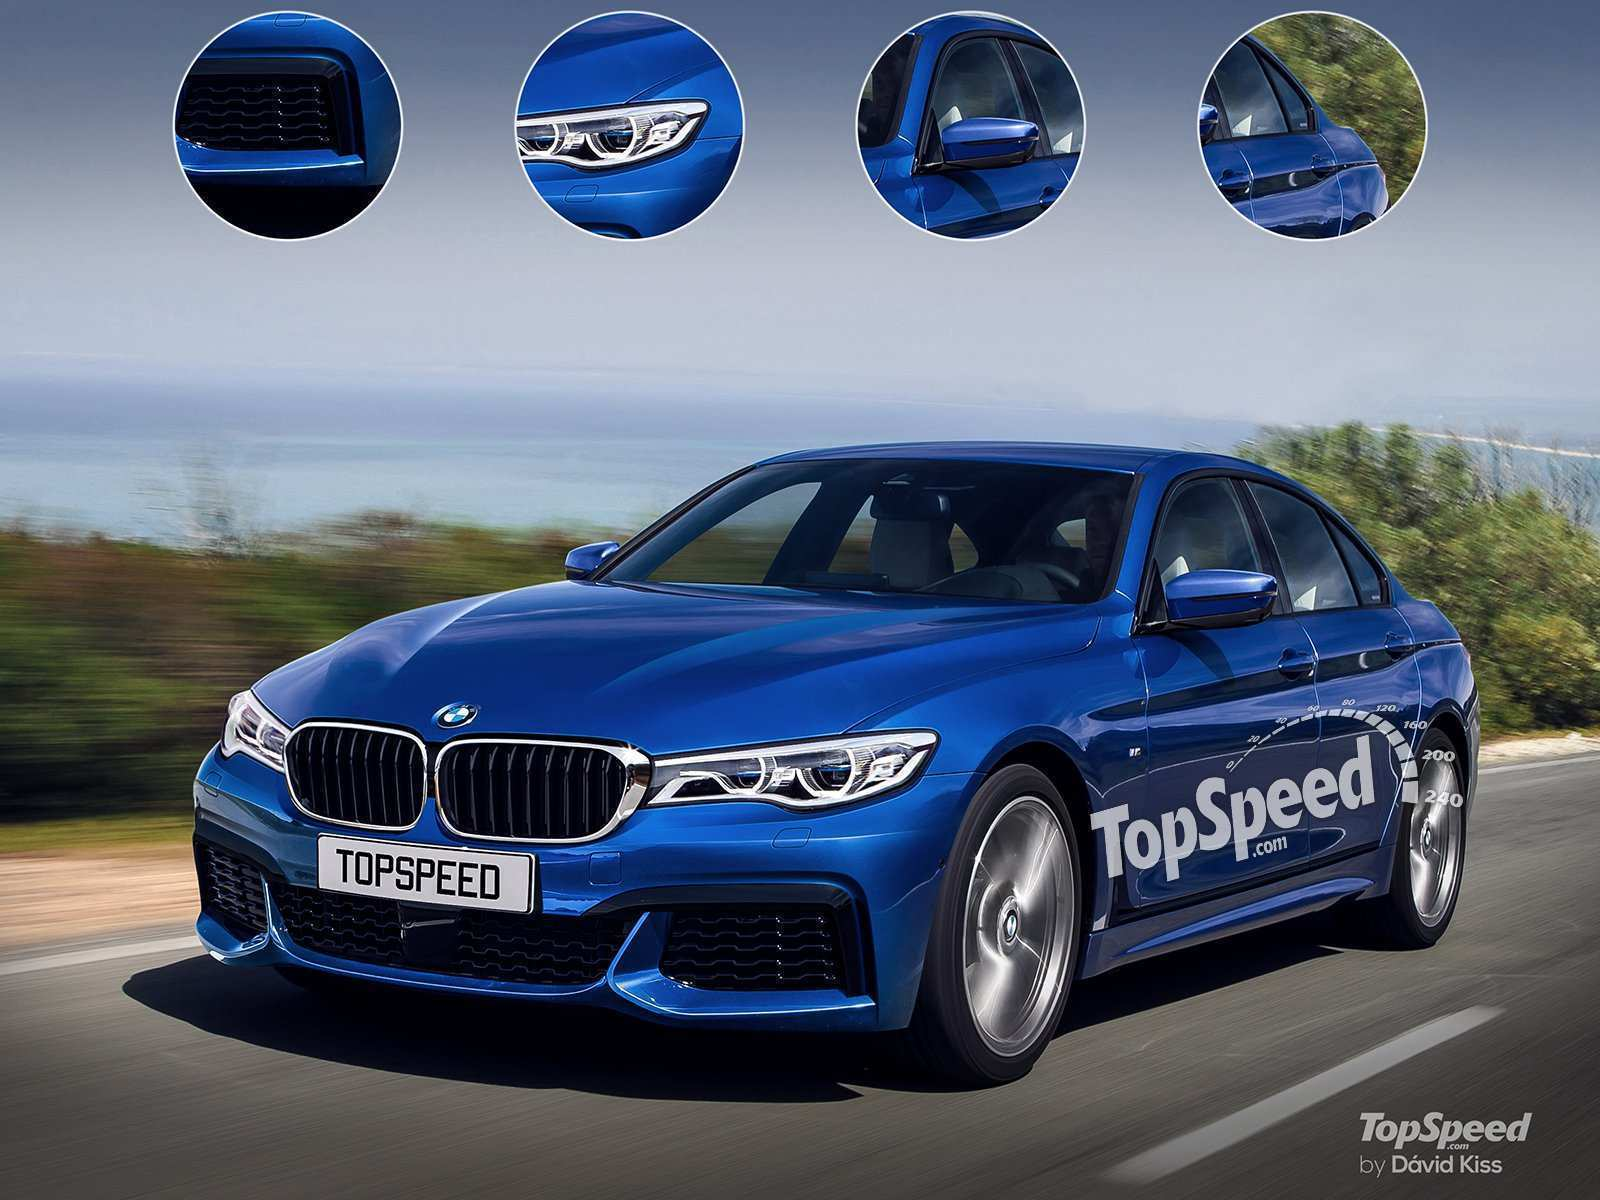 12 Concept of 2019 3 Series Bmw Concept by 2019 3 Series Bmw